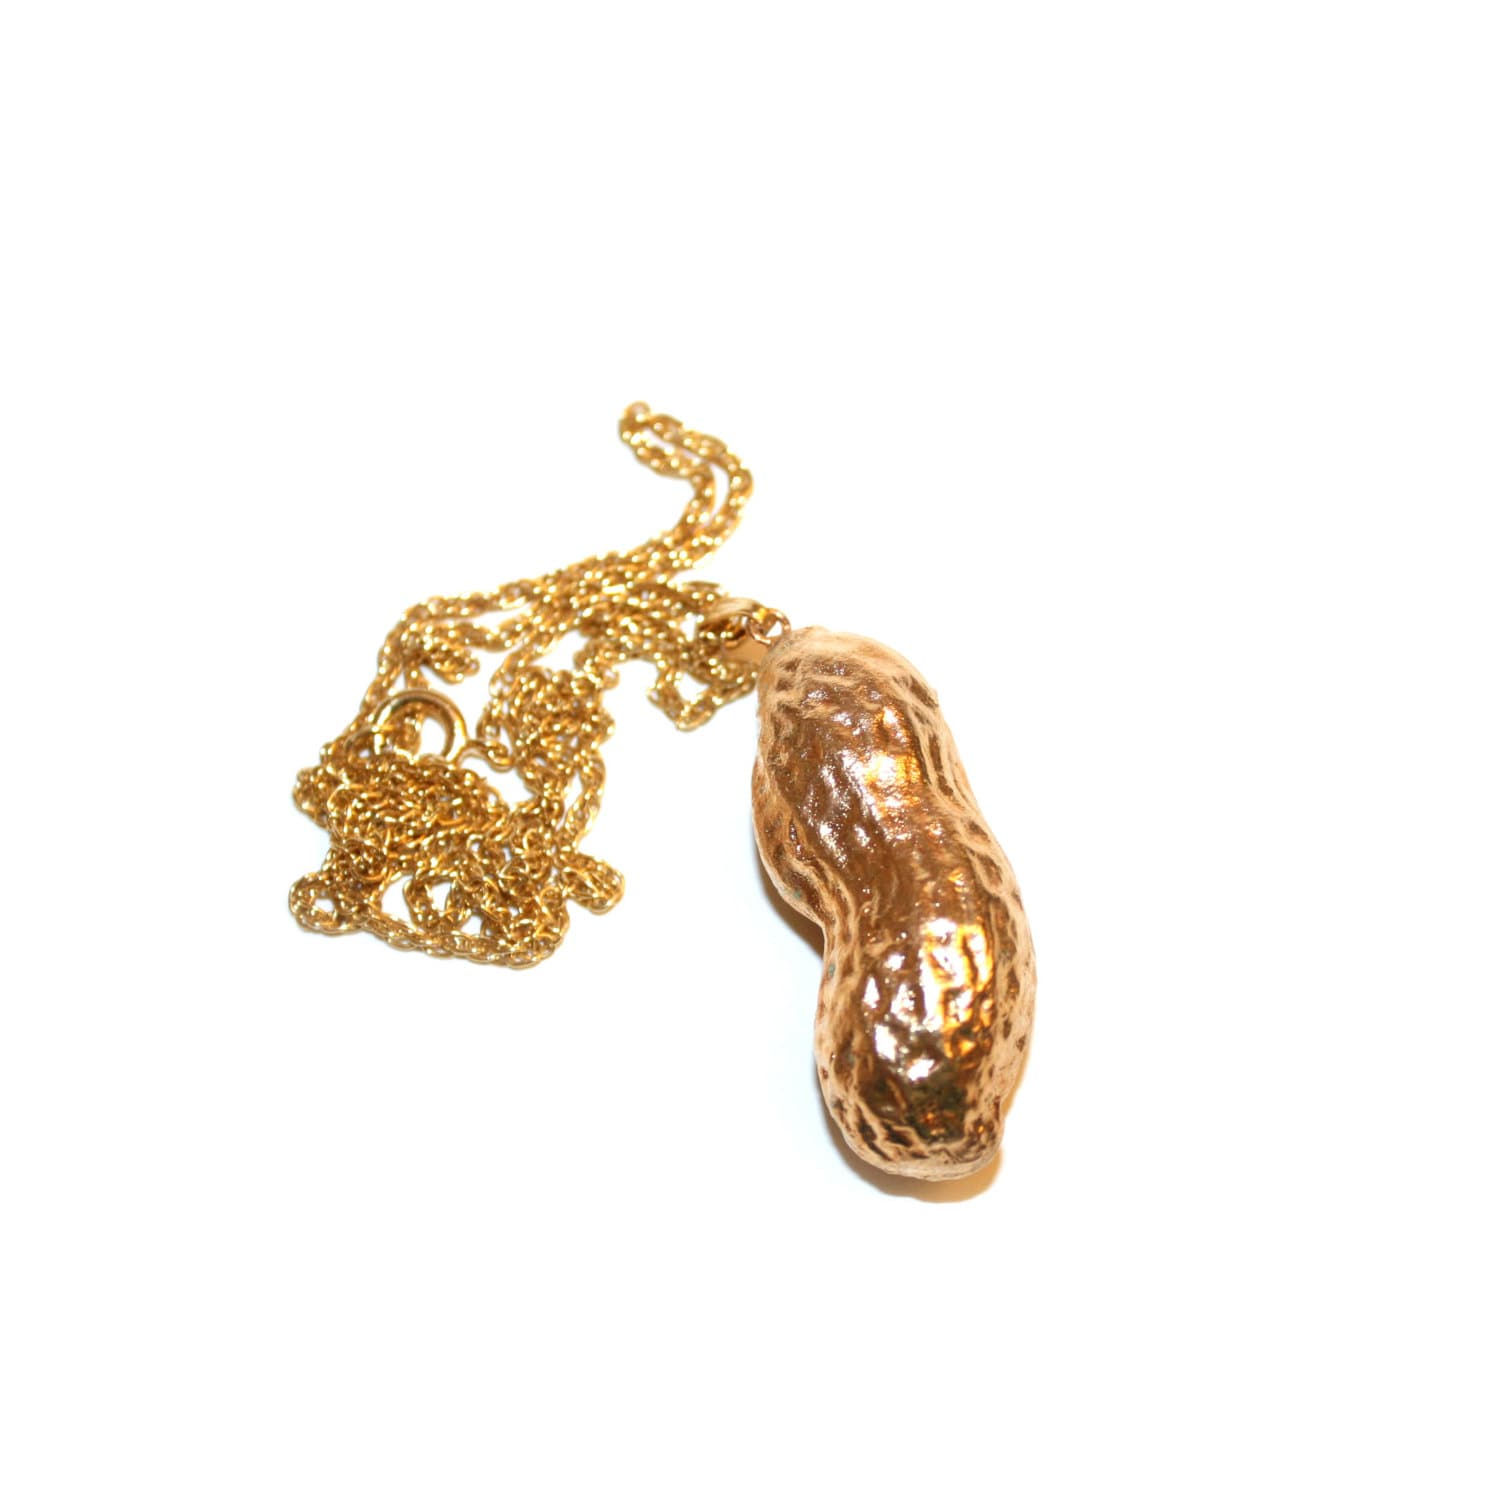 vintage gold dipped peanut necklace real peanut dipped in